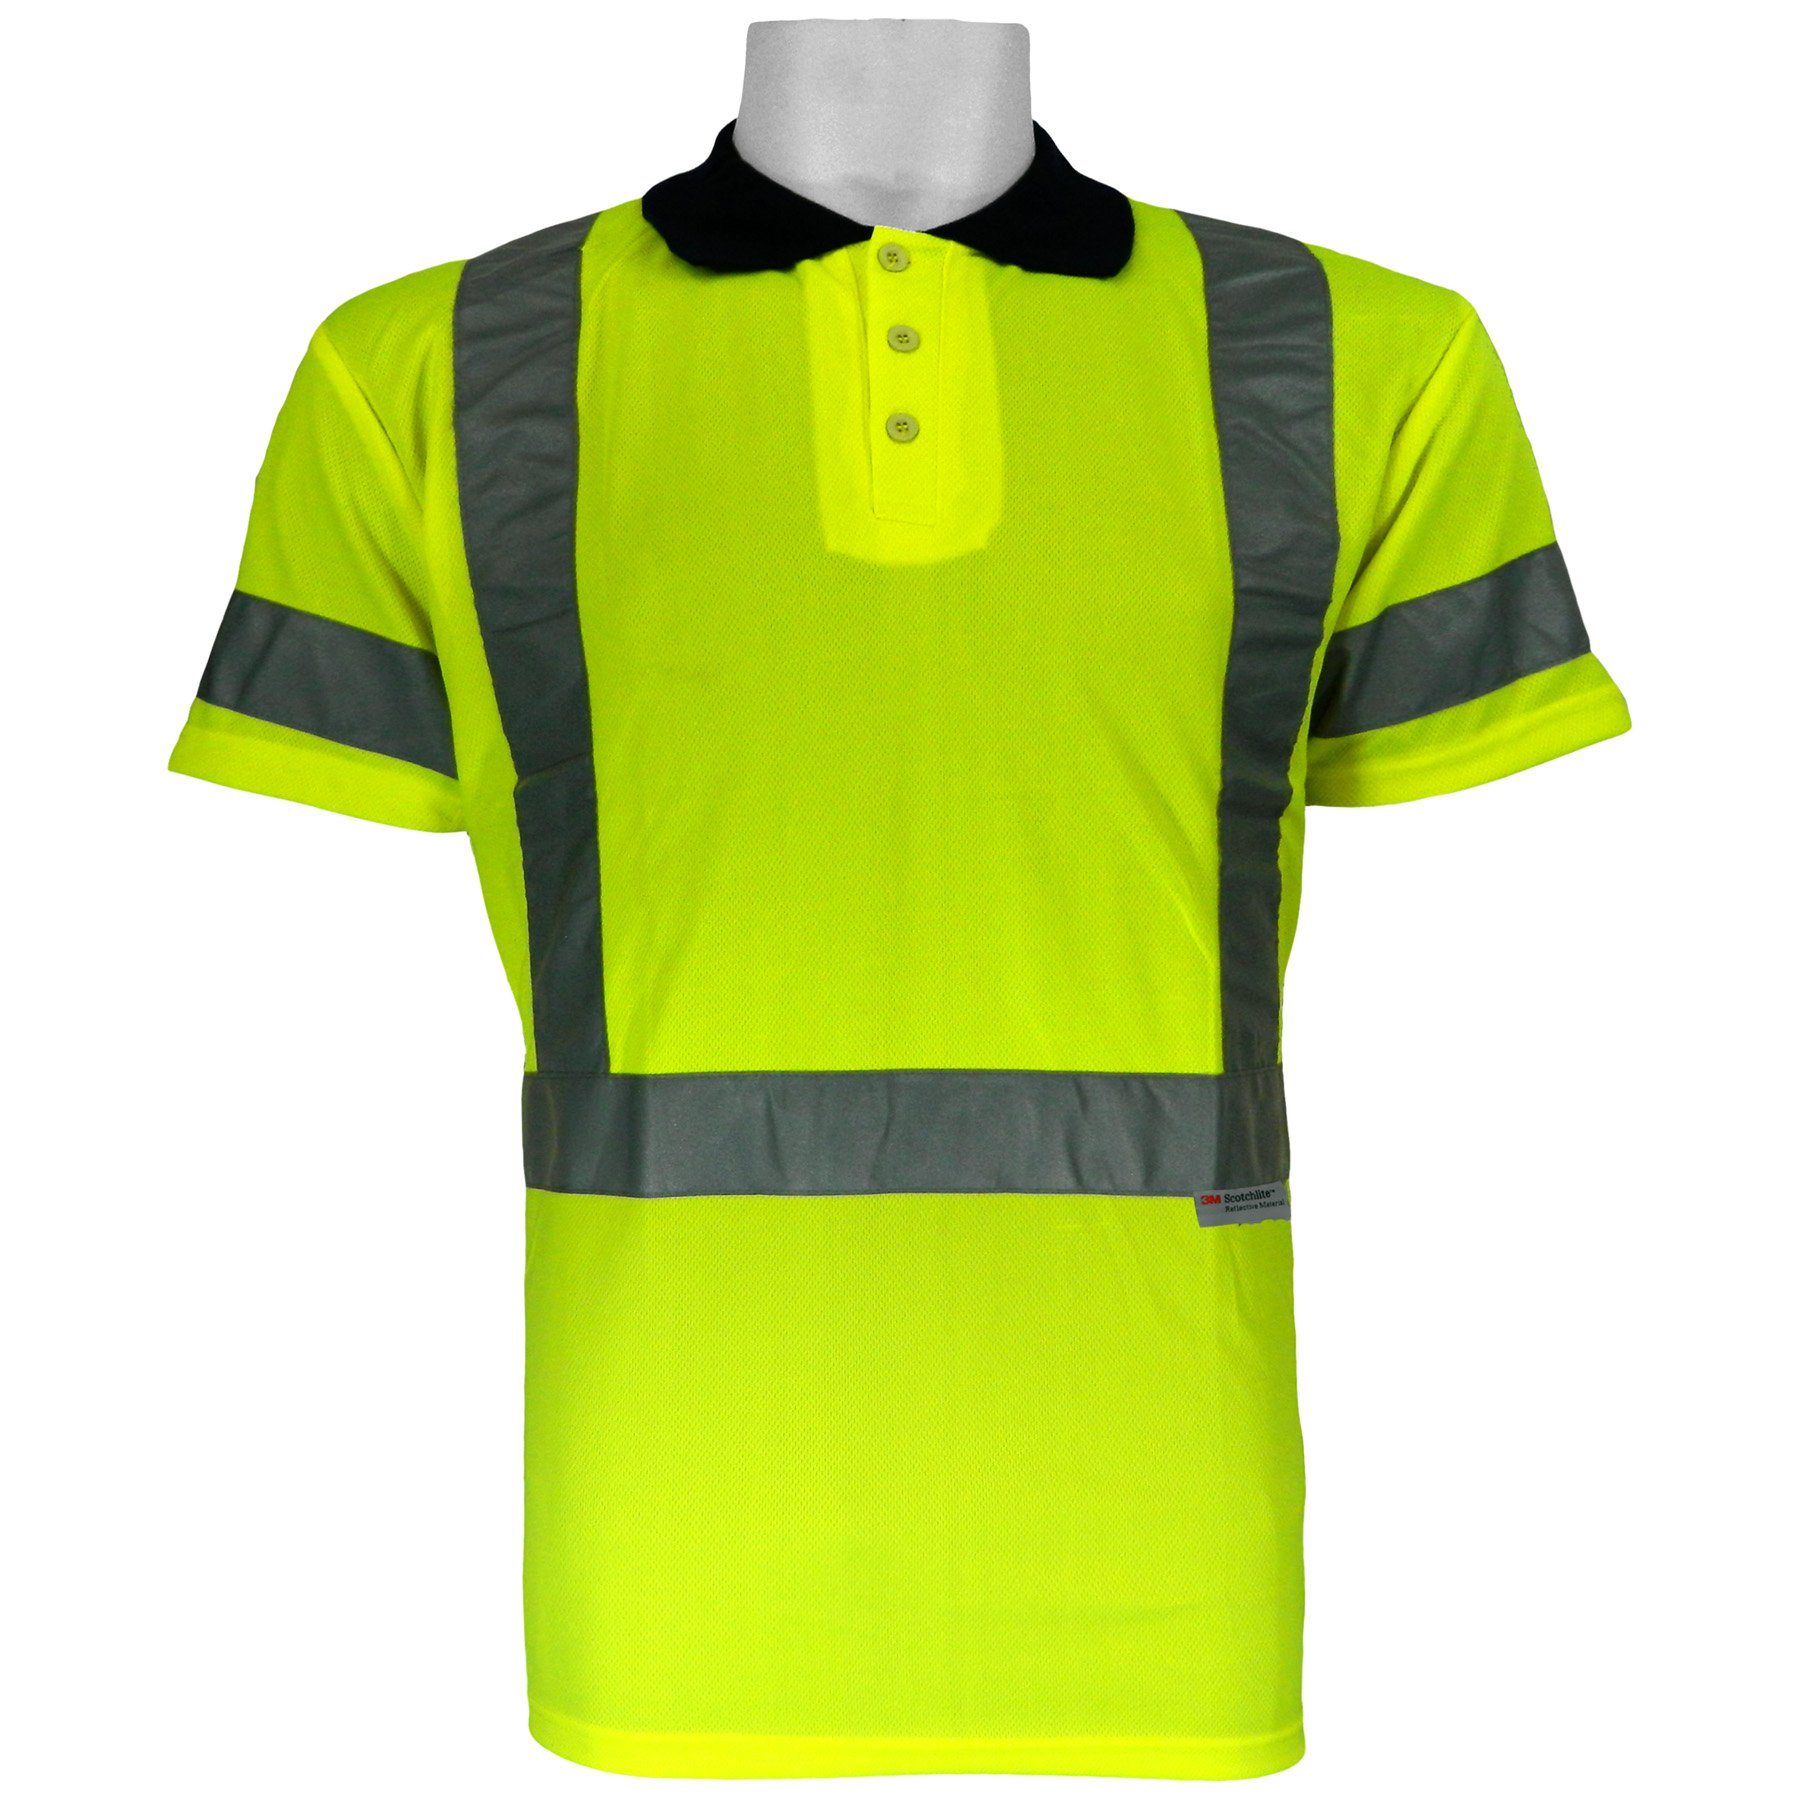 Global Glove GLO-009 FrogWear Class 3 Polo/Golf Style High Visibility Safety T-Shirt with 3M Scotchlite Reflective, Extra Large, Lime (Case of 100)